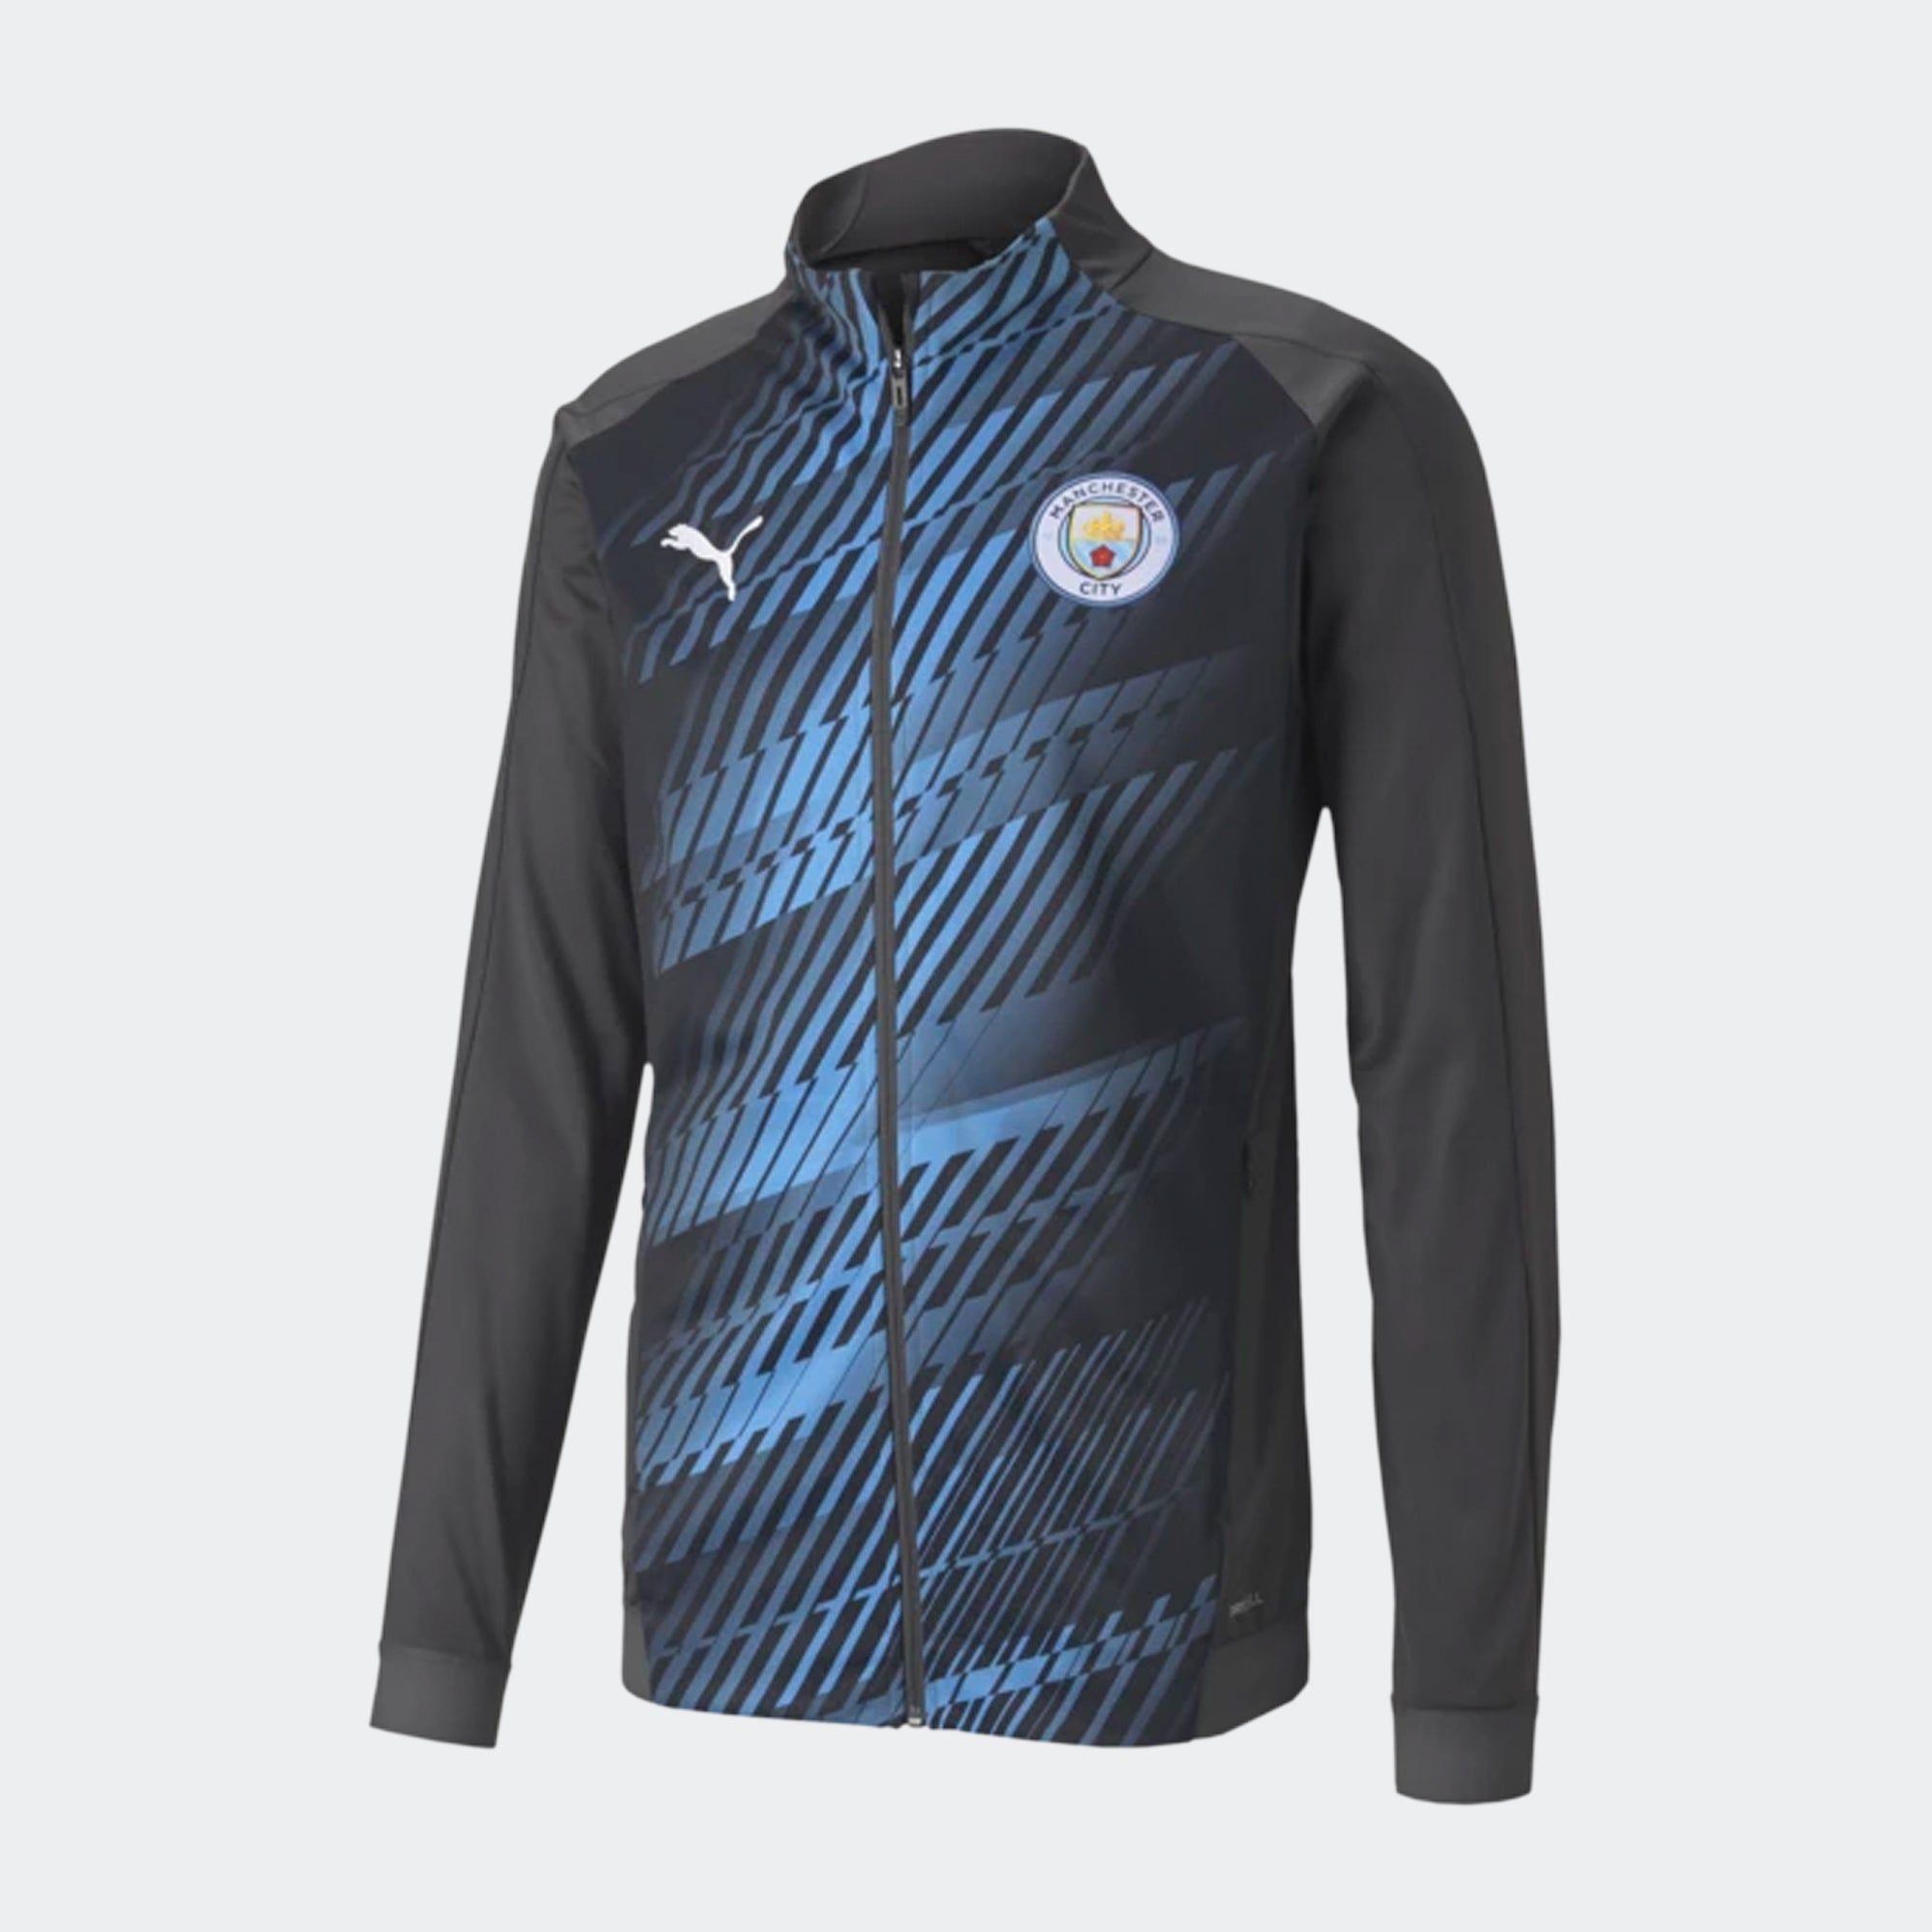 Men's Manchester City League Soccer Jacket